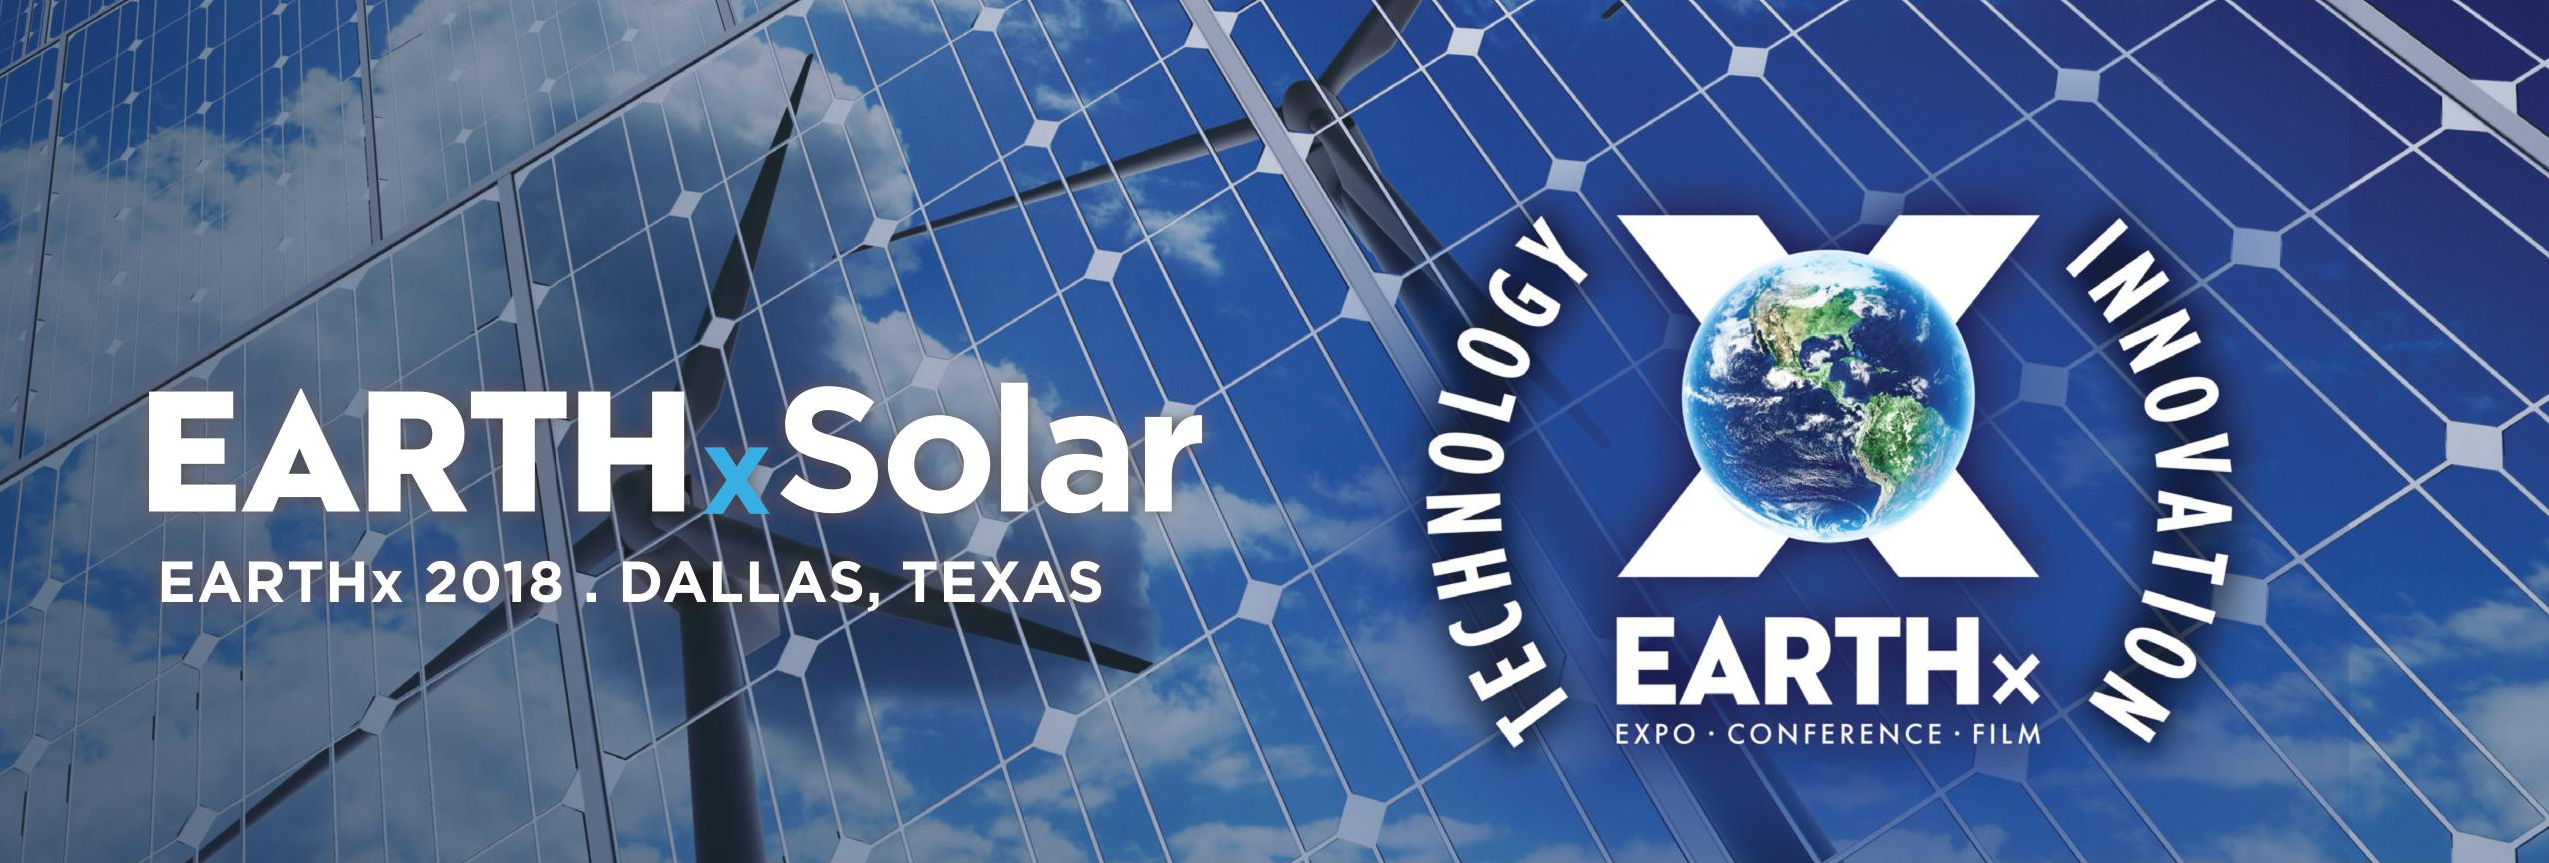 EARTHxSOLAR 2018: Register Your Interest